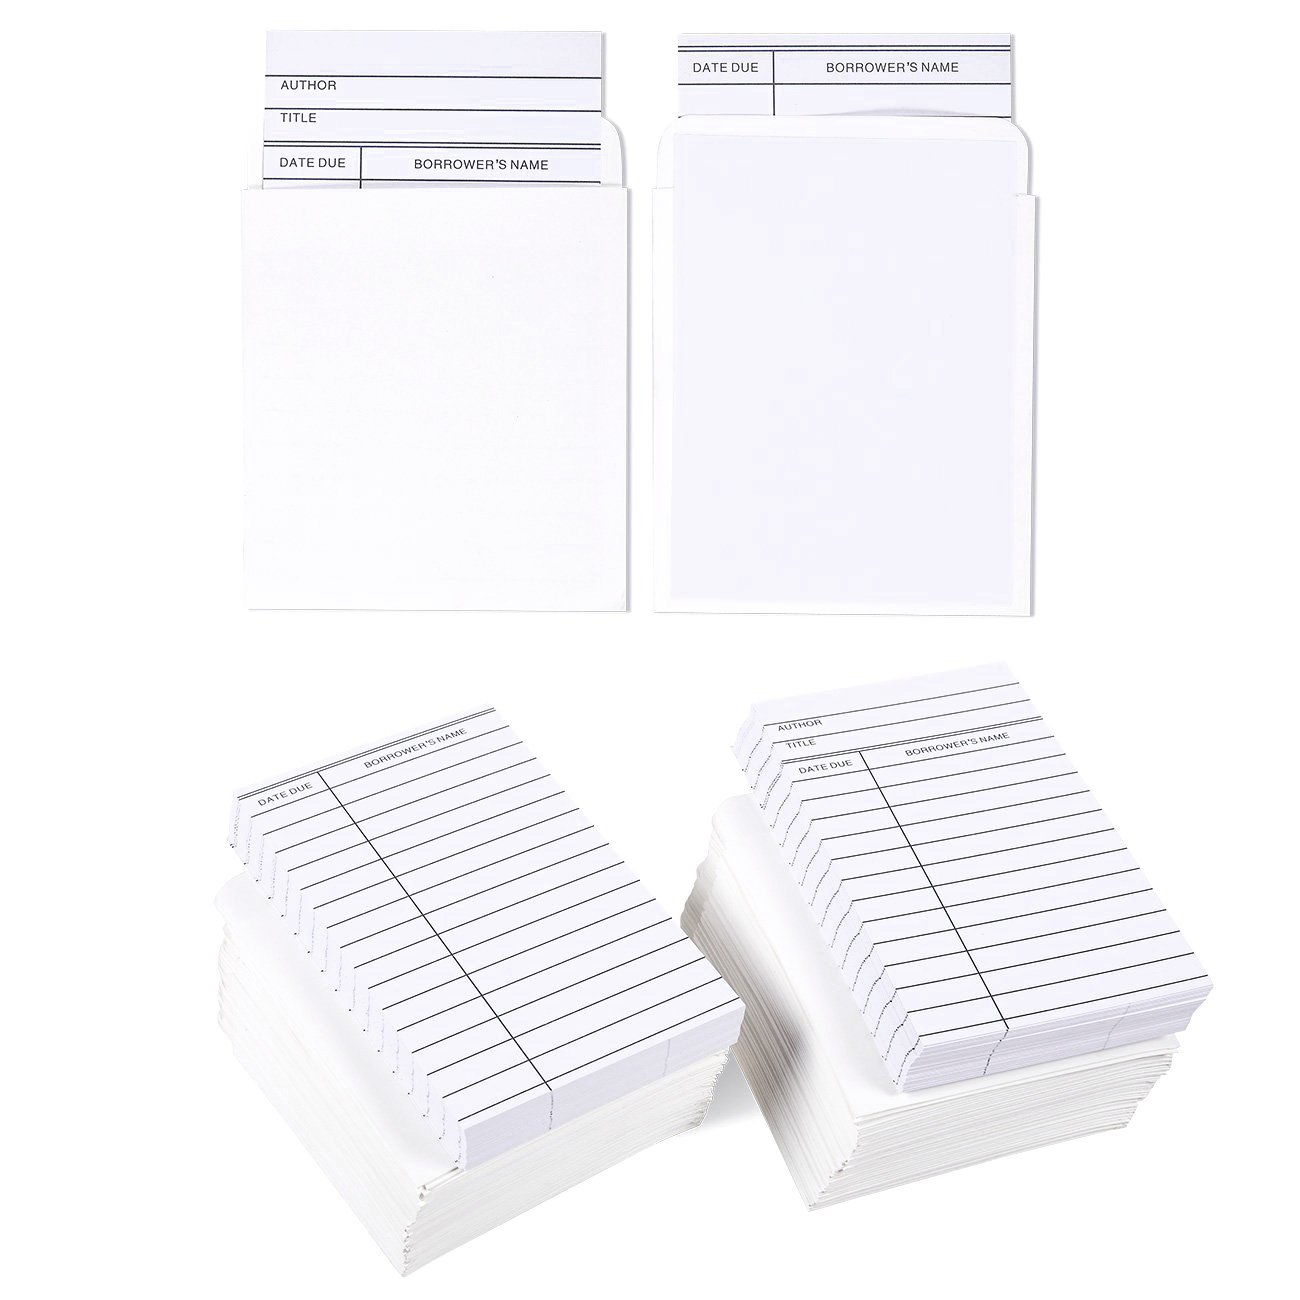 Best Paper Greetings Set of 100 Library Cards and Book Pockets - Library Pockets, Library Card Holder, Book Cards for Public Library Record Keeping, Tracking, Book Borrowing, White